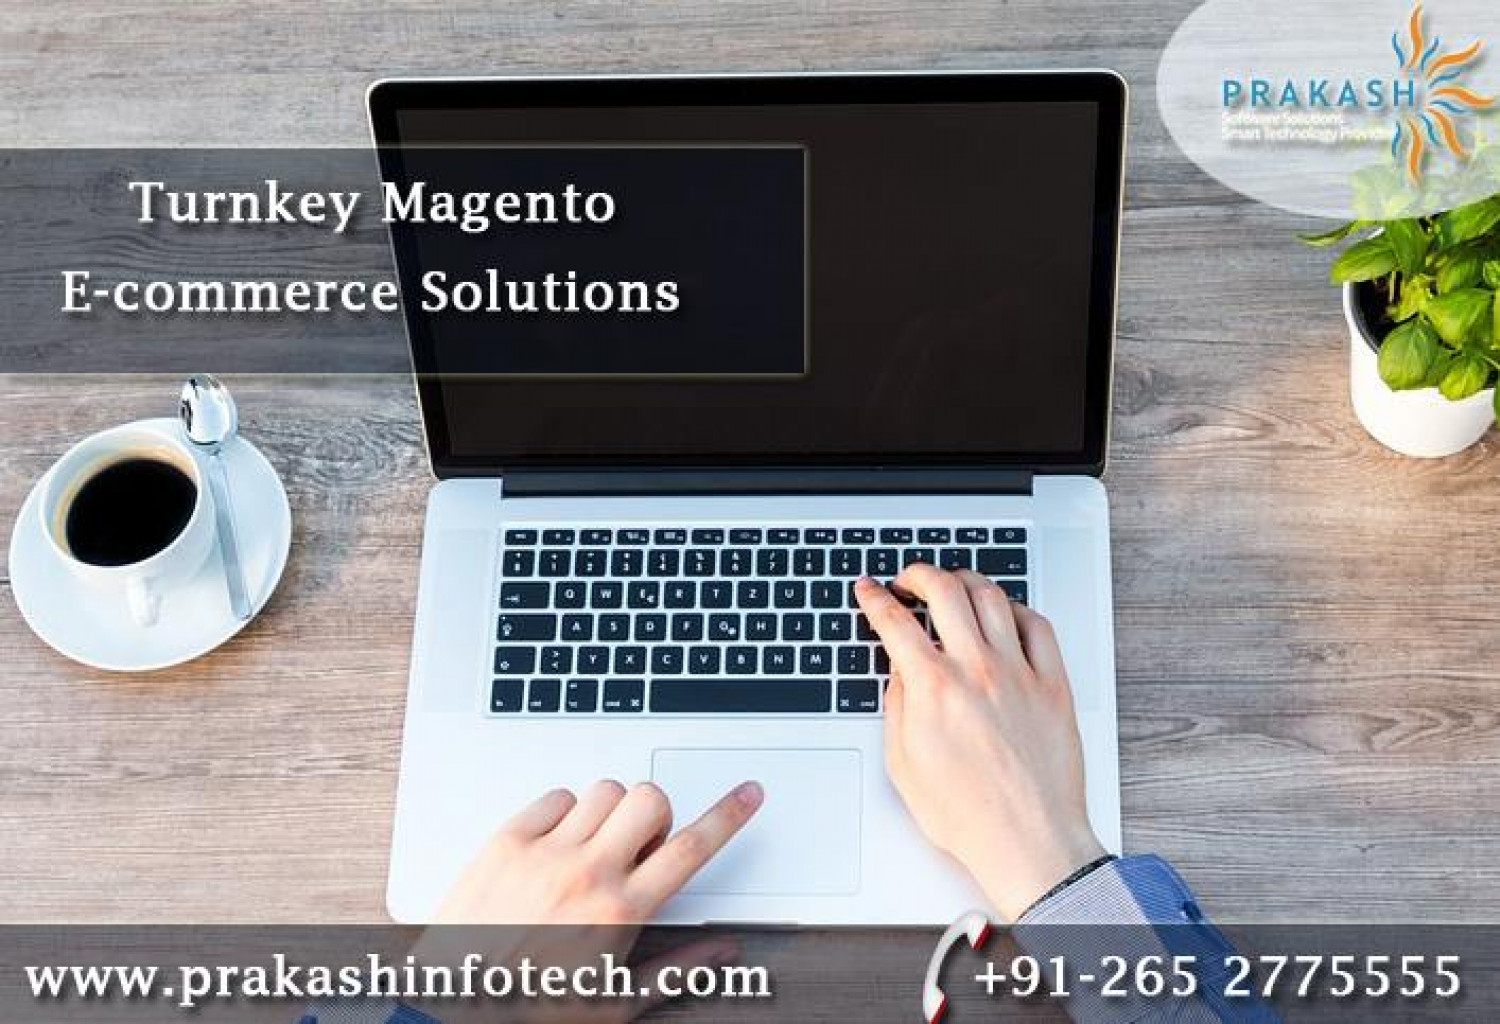 Turnkey Magento e-commerce solutions Infographic